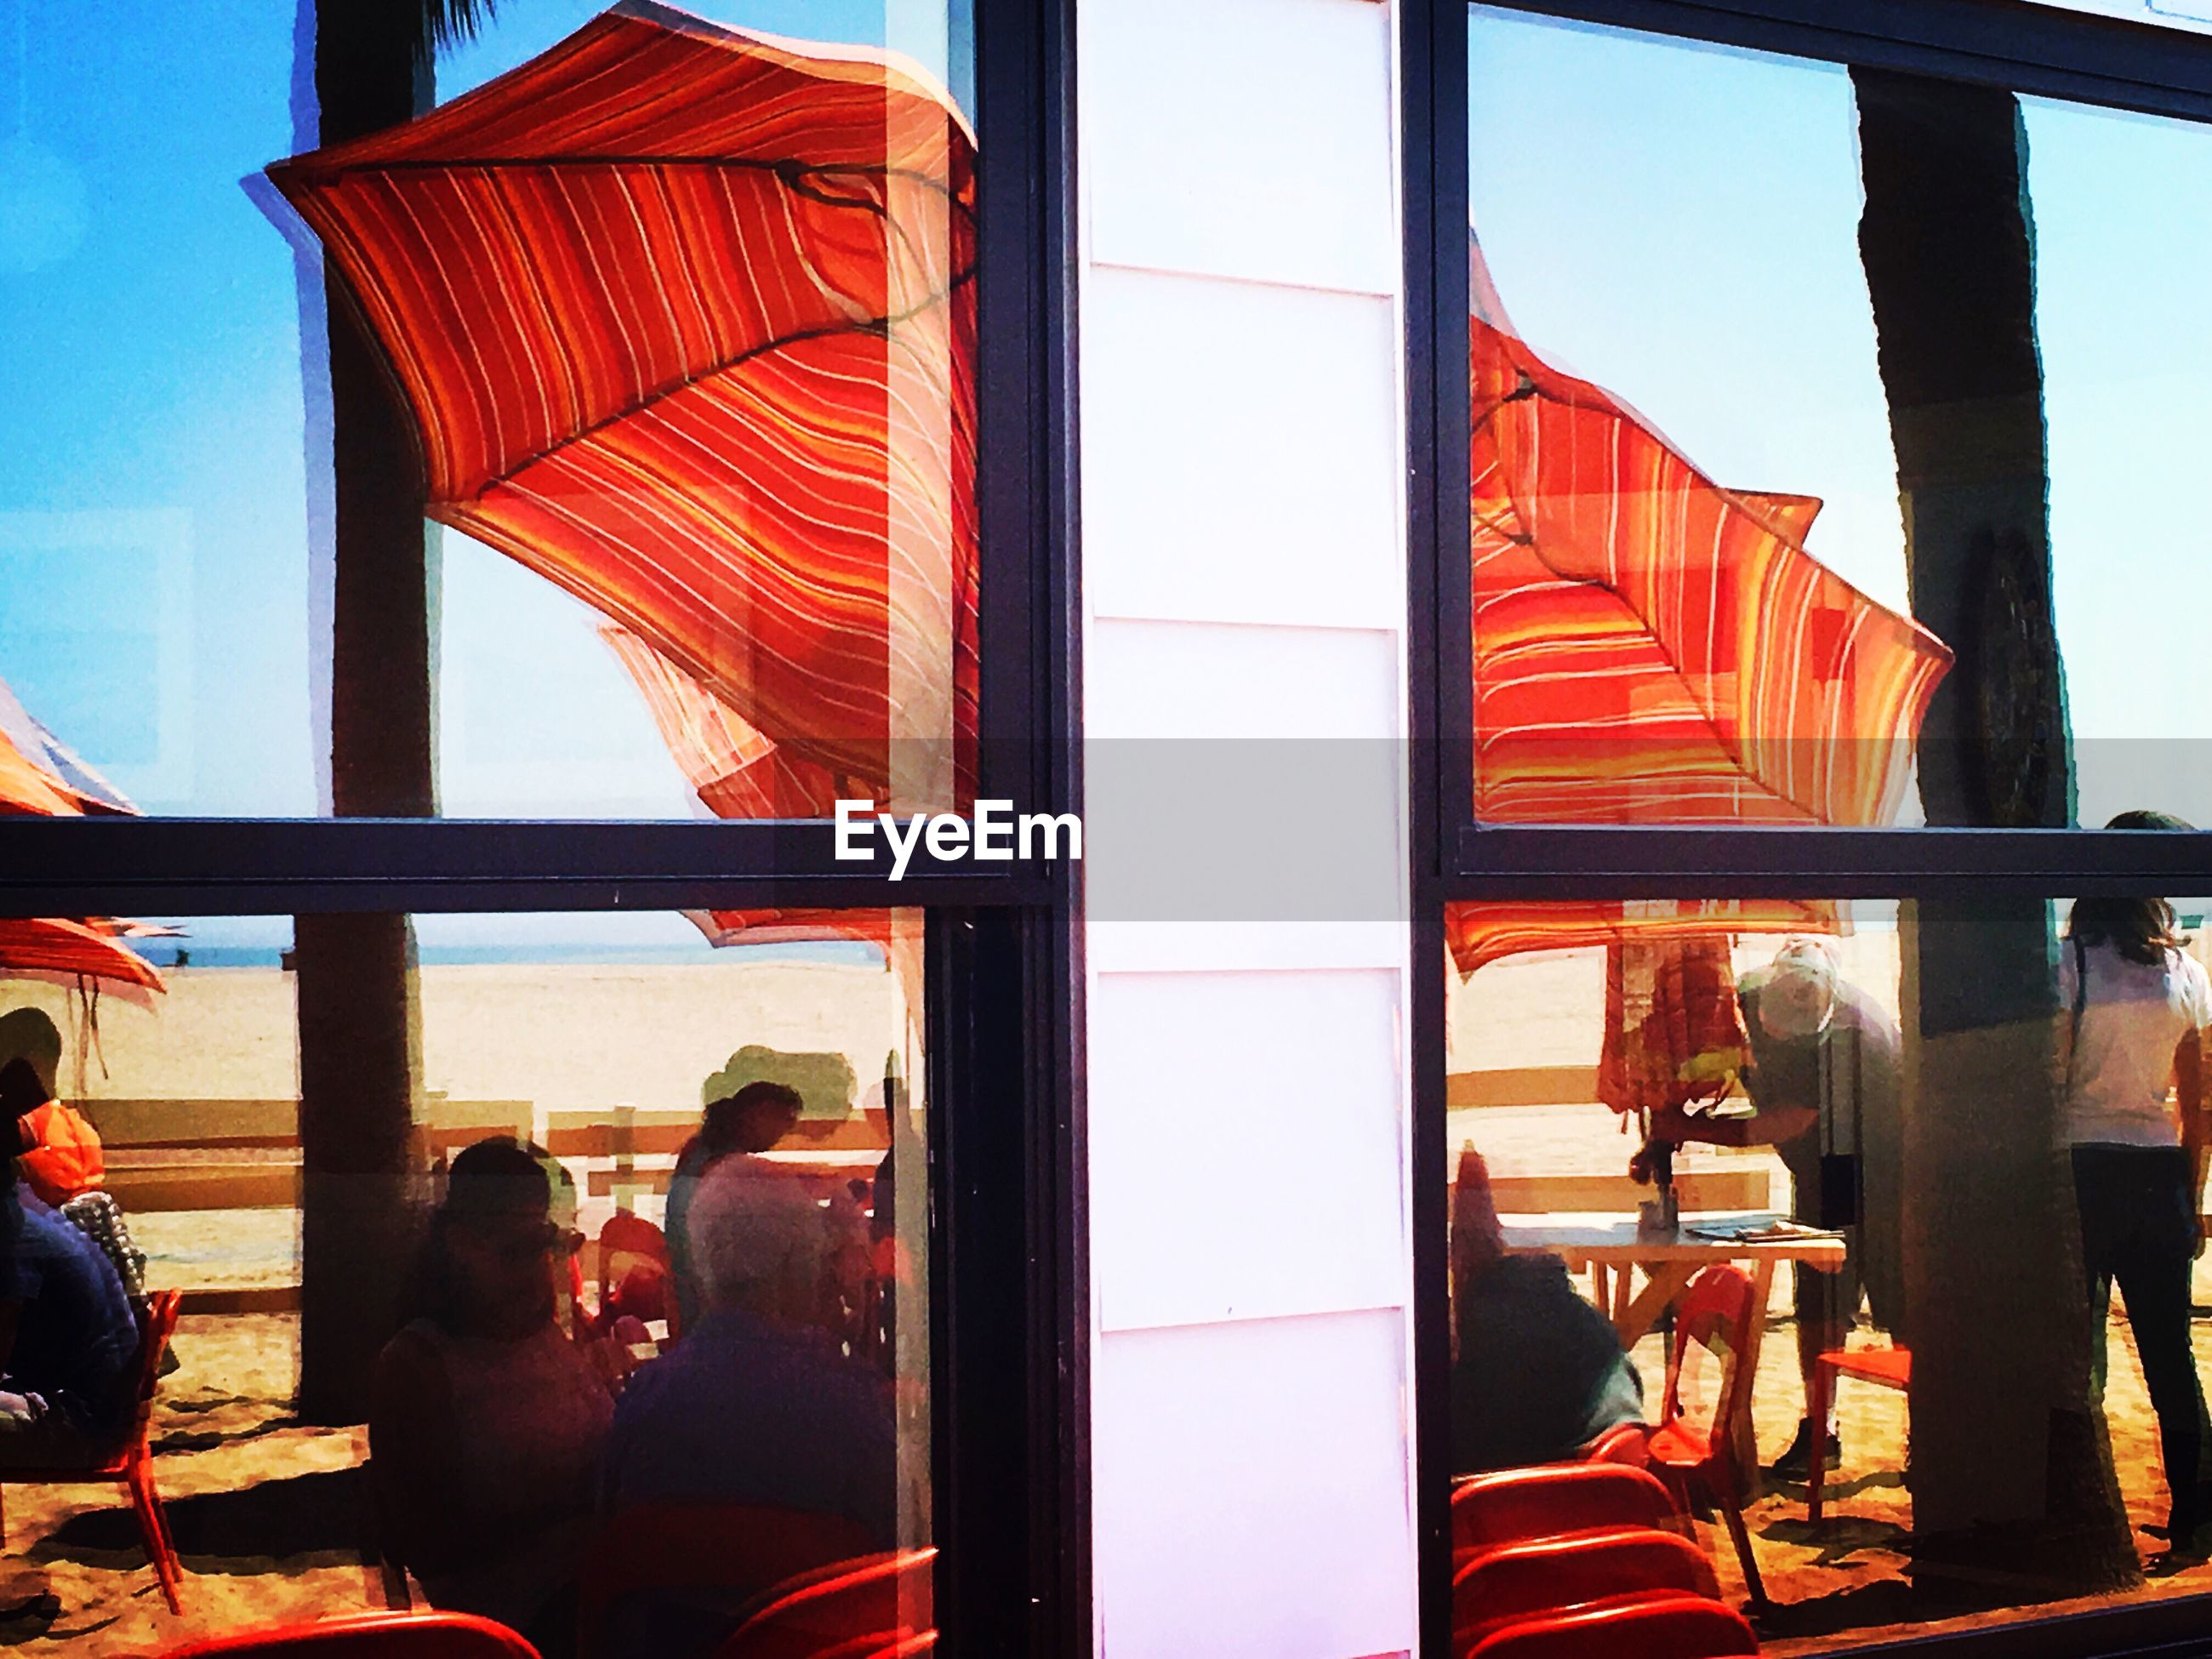 People at sidewalk cafe at shore seen through glass window